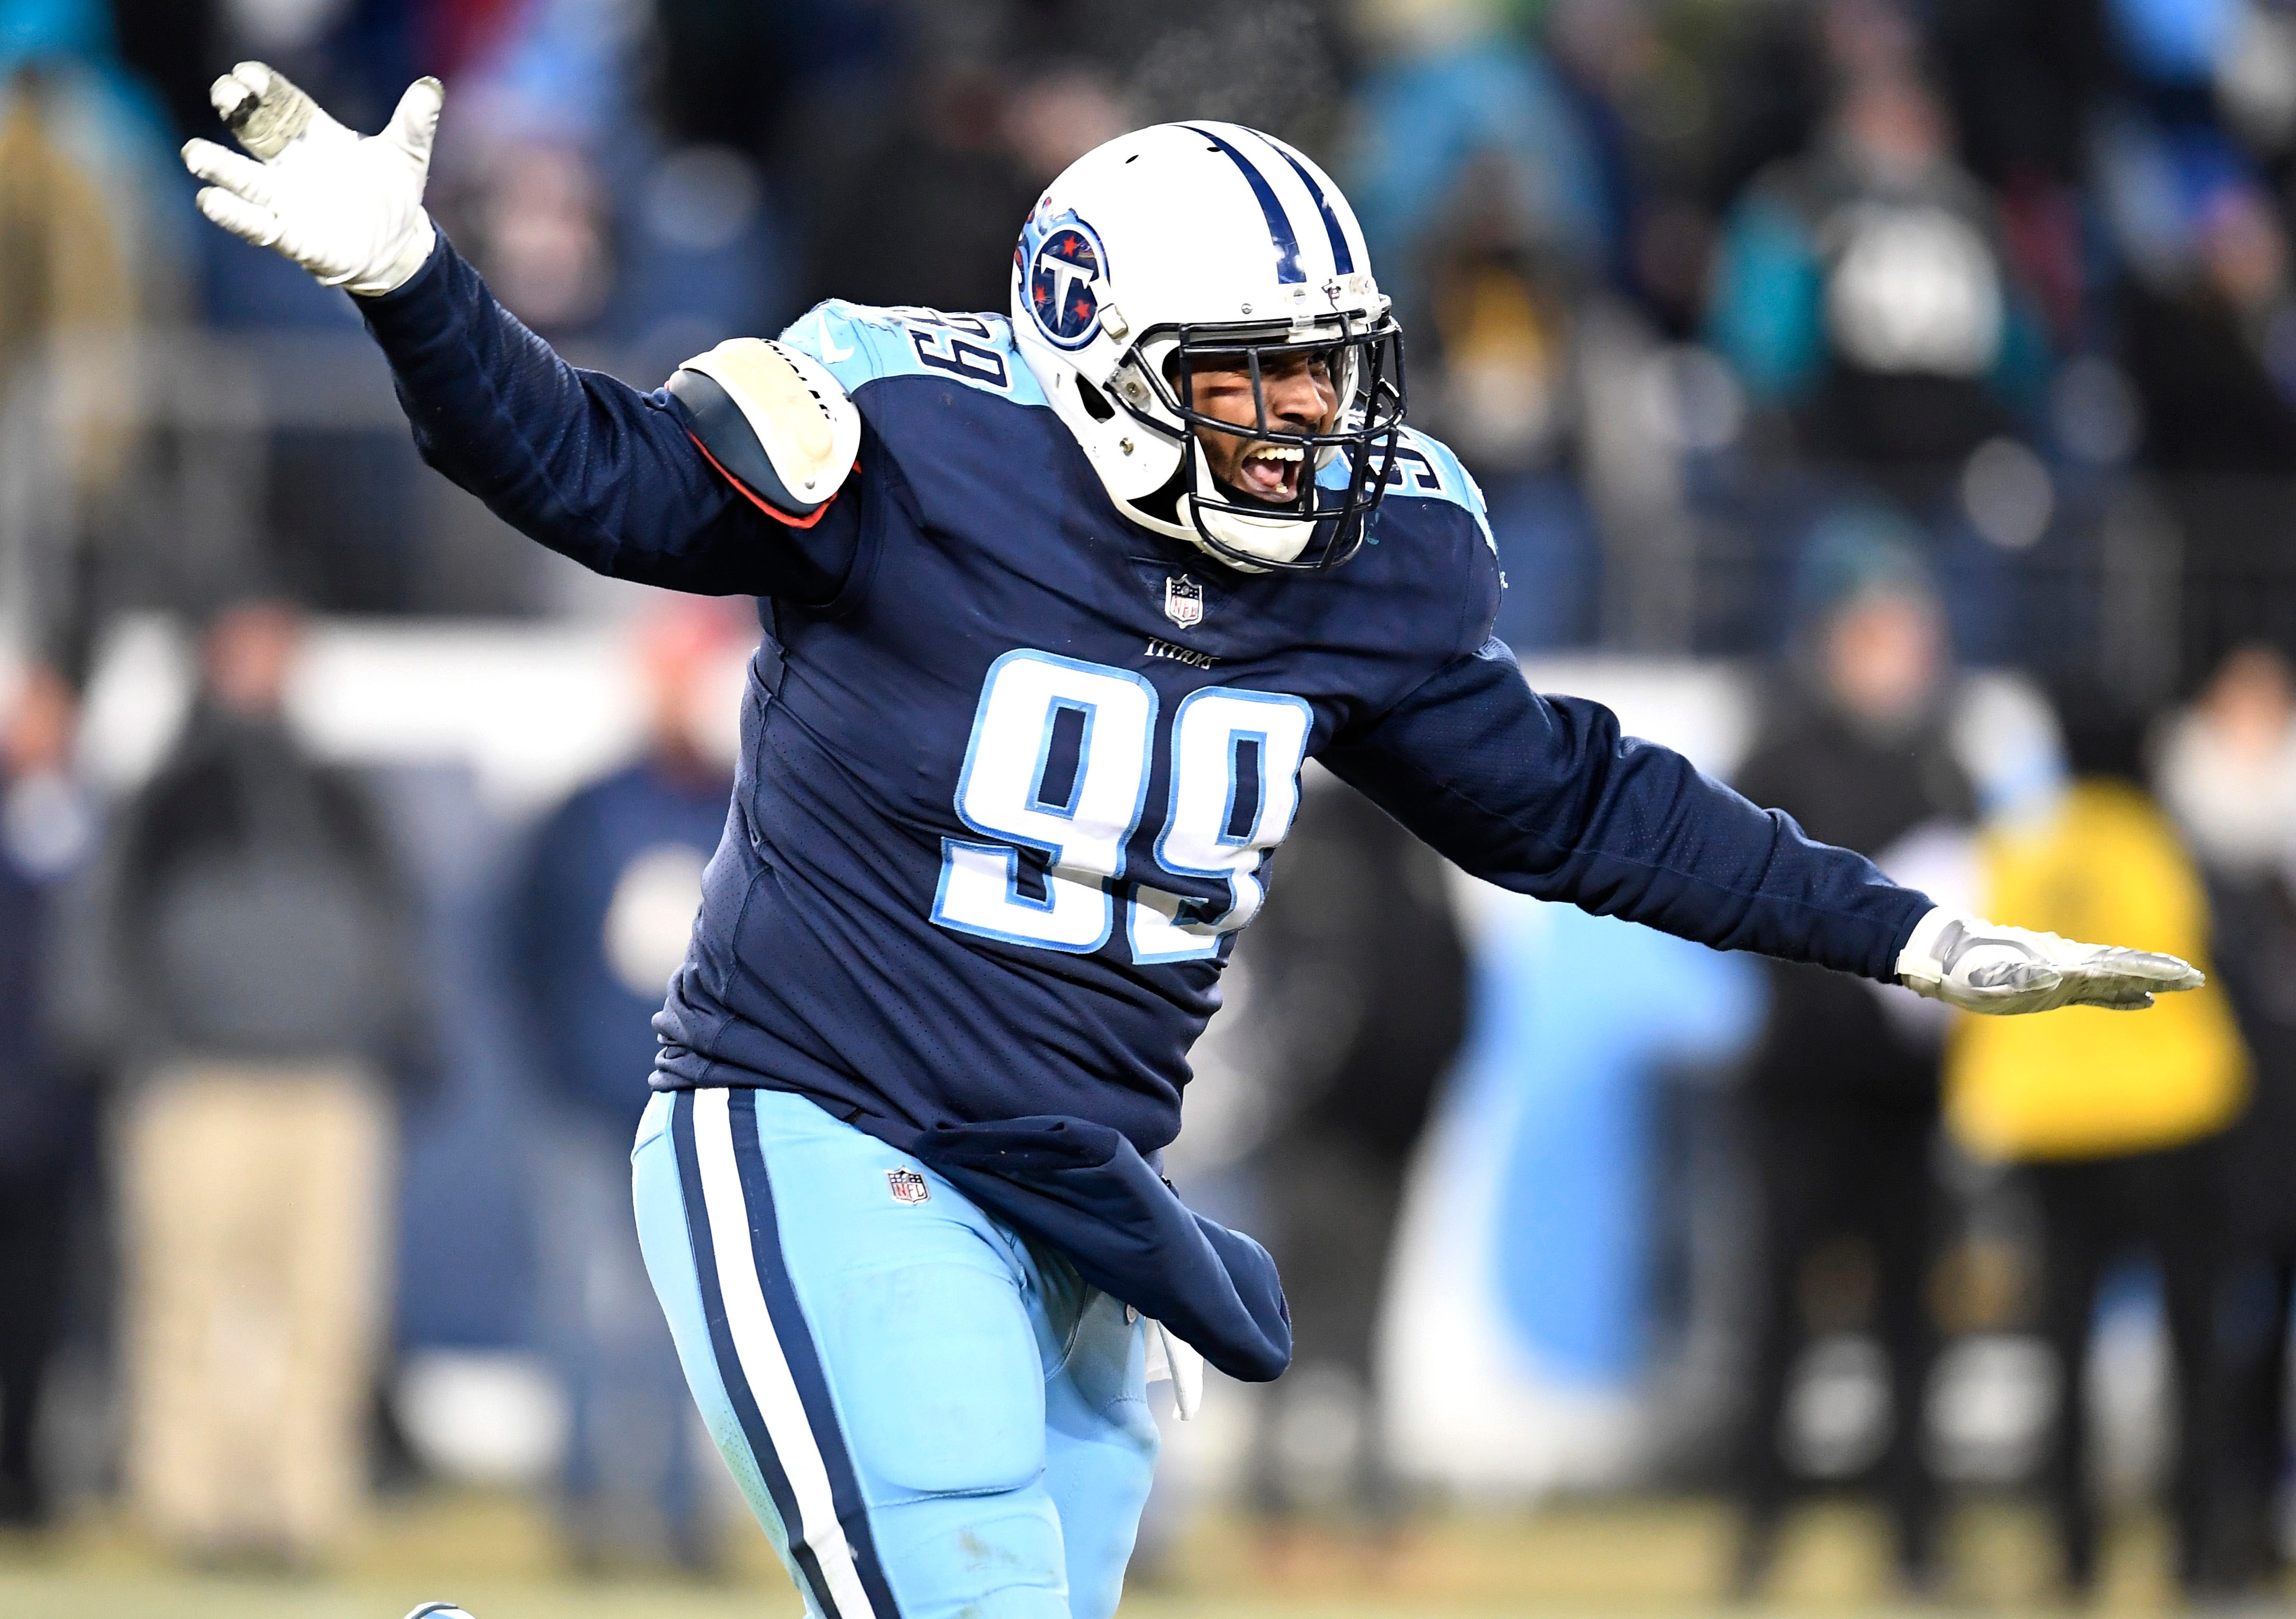 Titans depth chart: Defensive line needs help from reserves